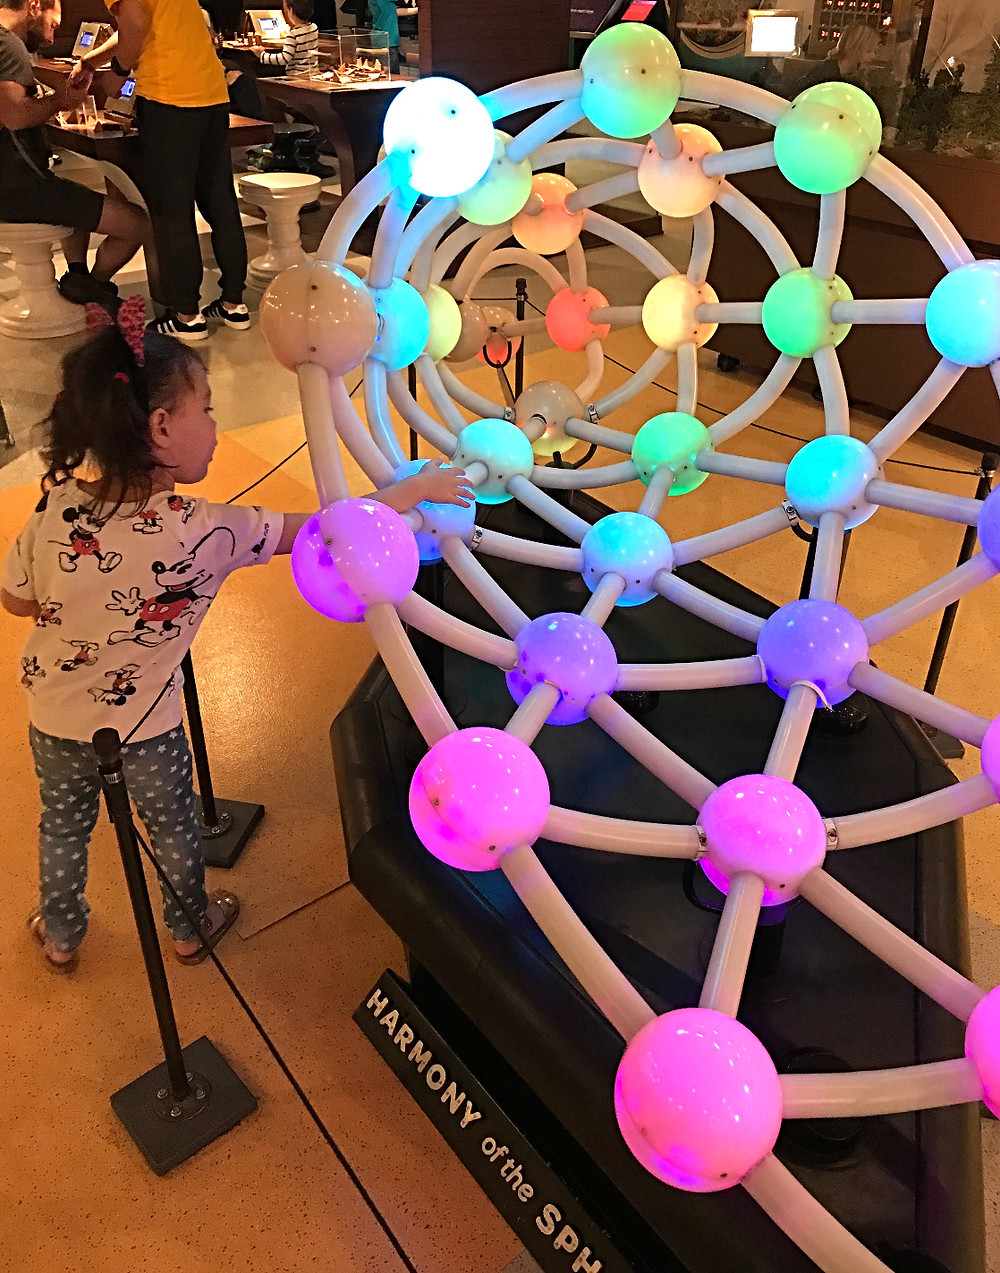 MoMath, National Museum of MAthematics. Harmony of spheres, children's museums, nyc with kids, learning is fun, curious g and me